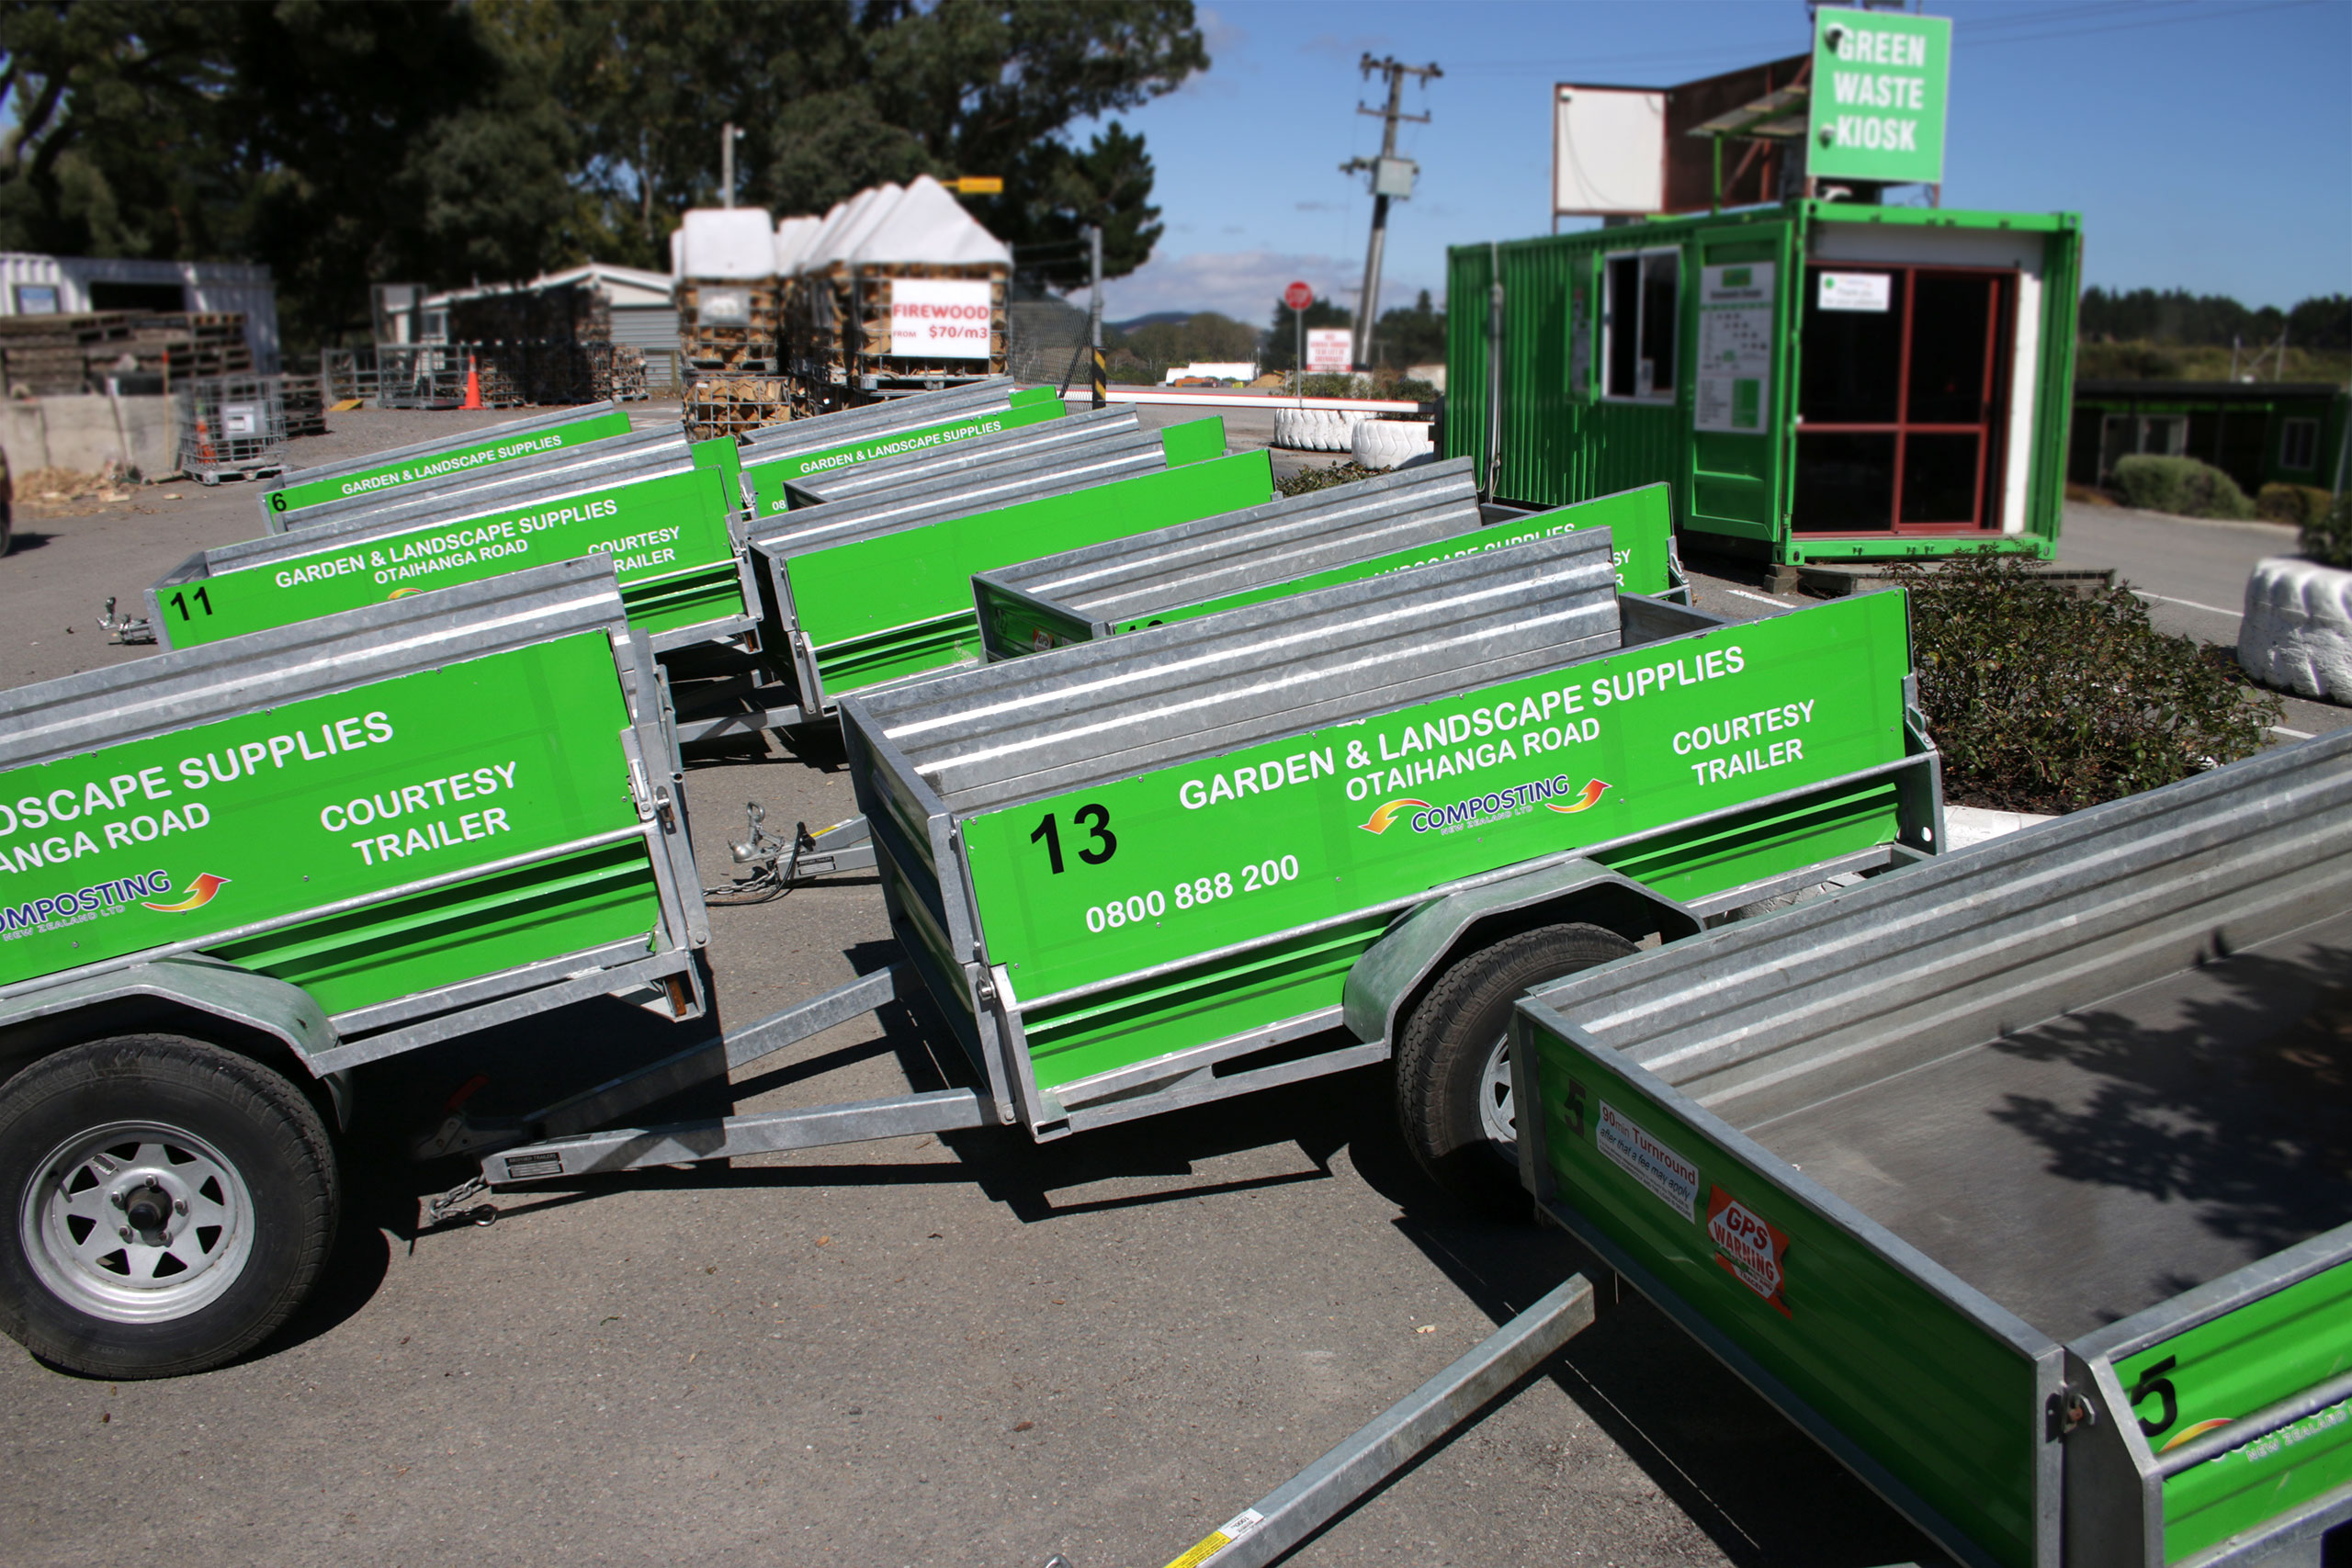 courtesy-trailers from Composting New Zealand